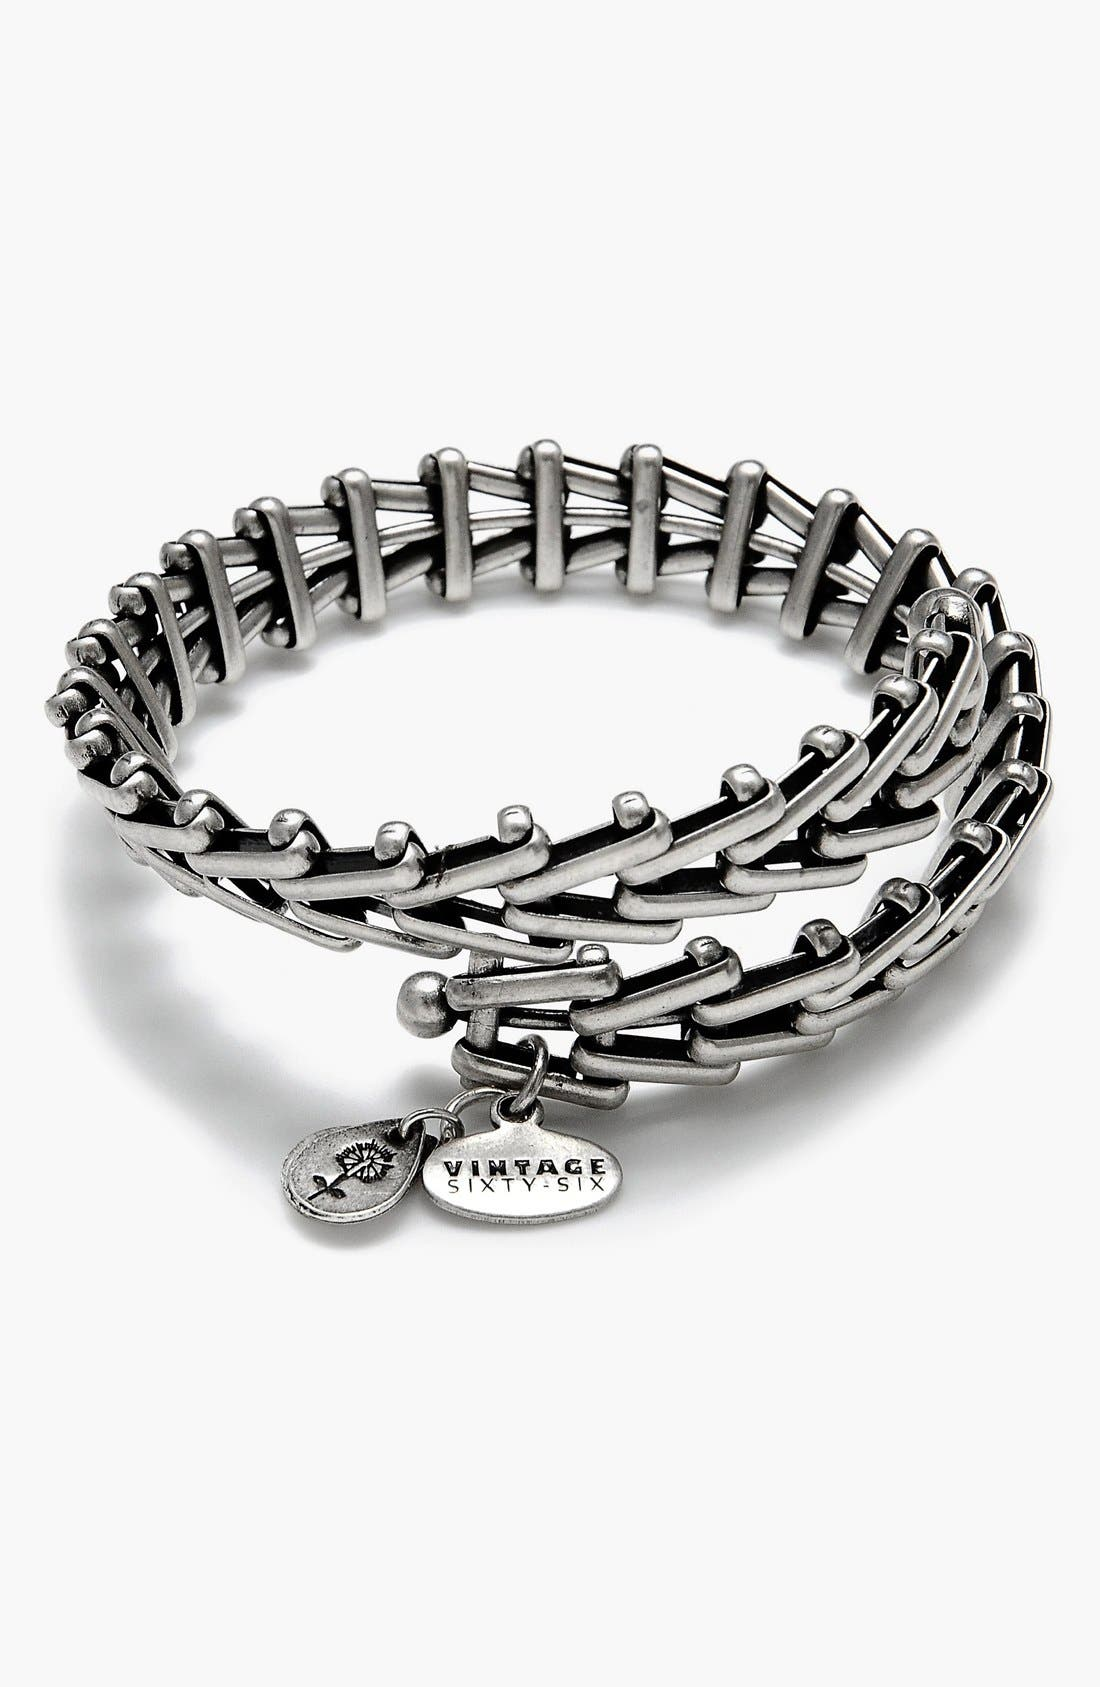 Alex and Ani 'Gypsy 66' Wrap Bracelet,                             Main thumbnail 1, color,                             Russian Silver